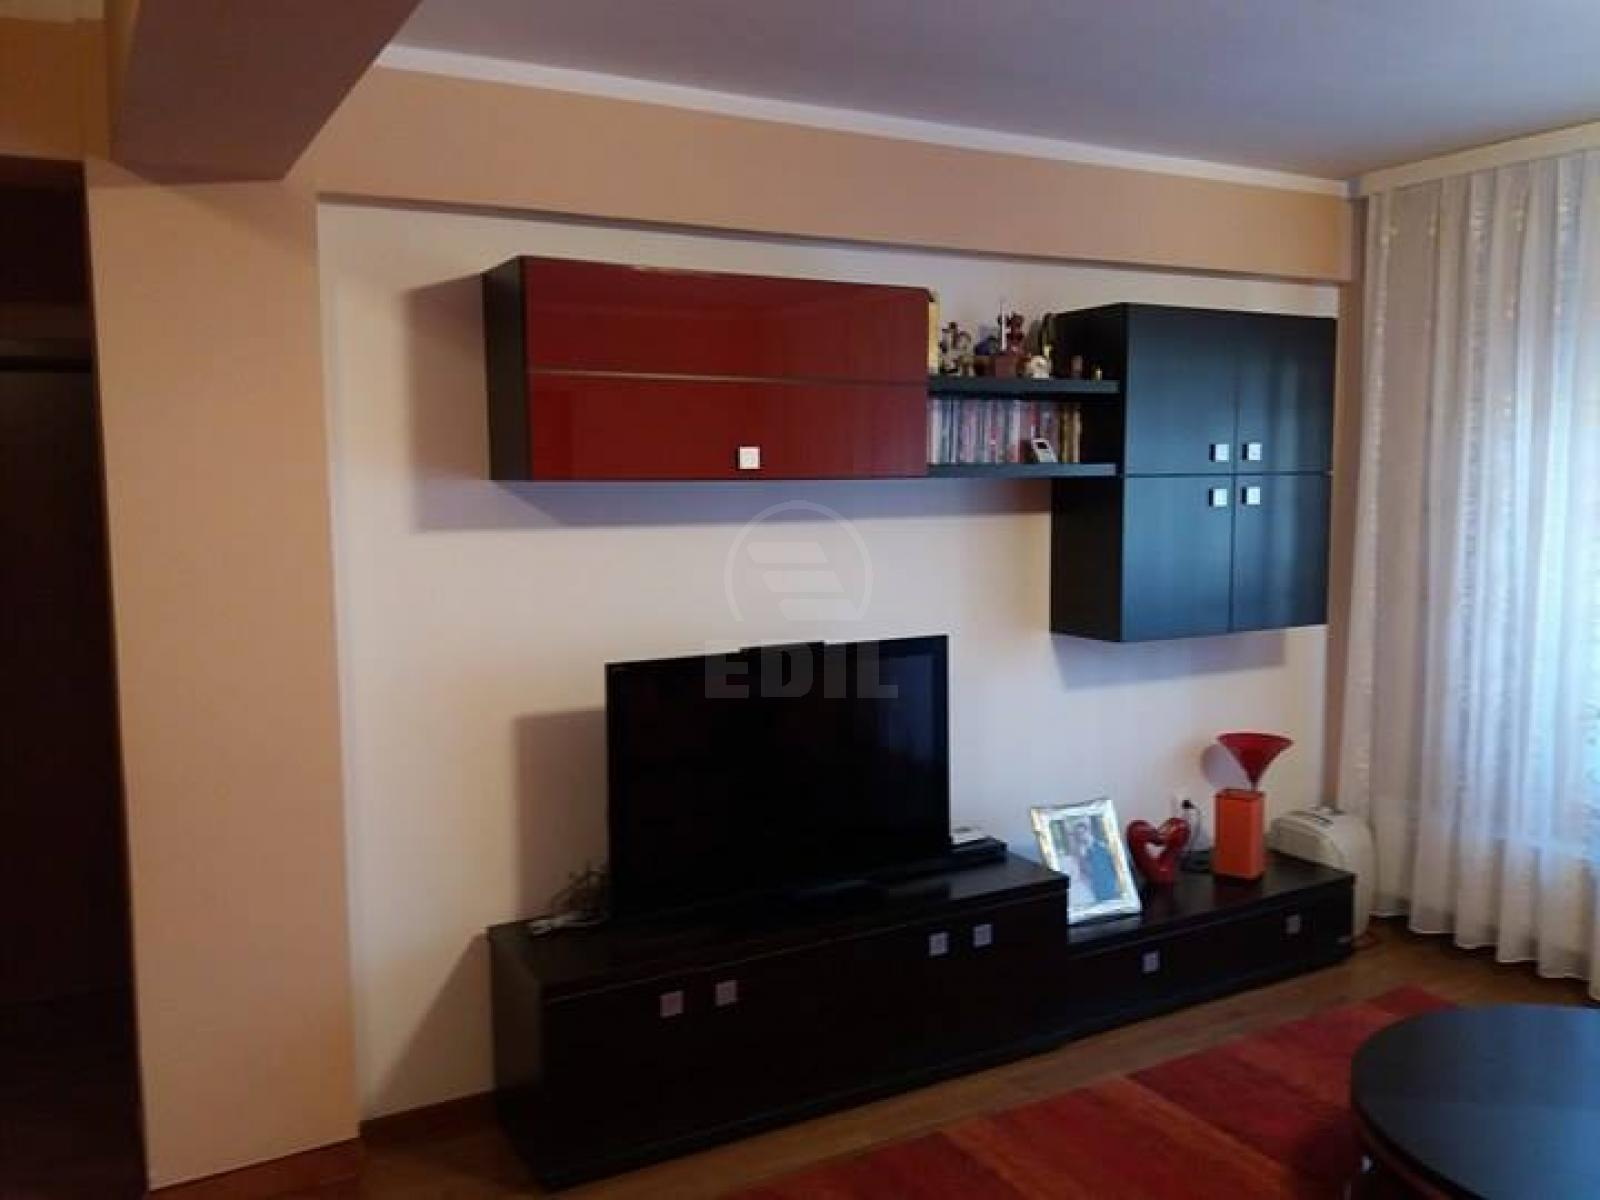 Apartment for sale 3 rooms, APCJ273629-1